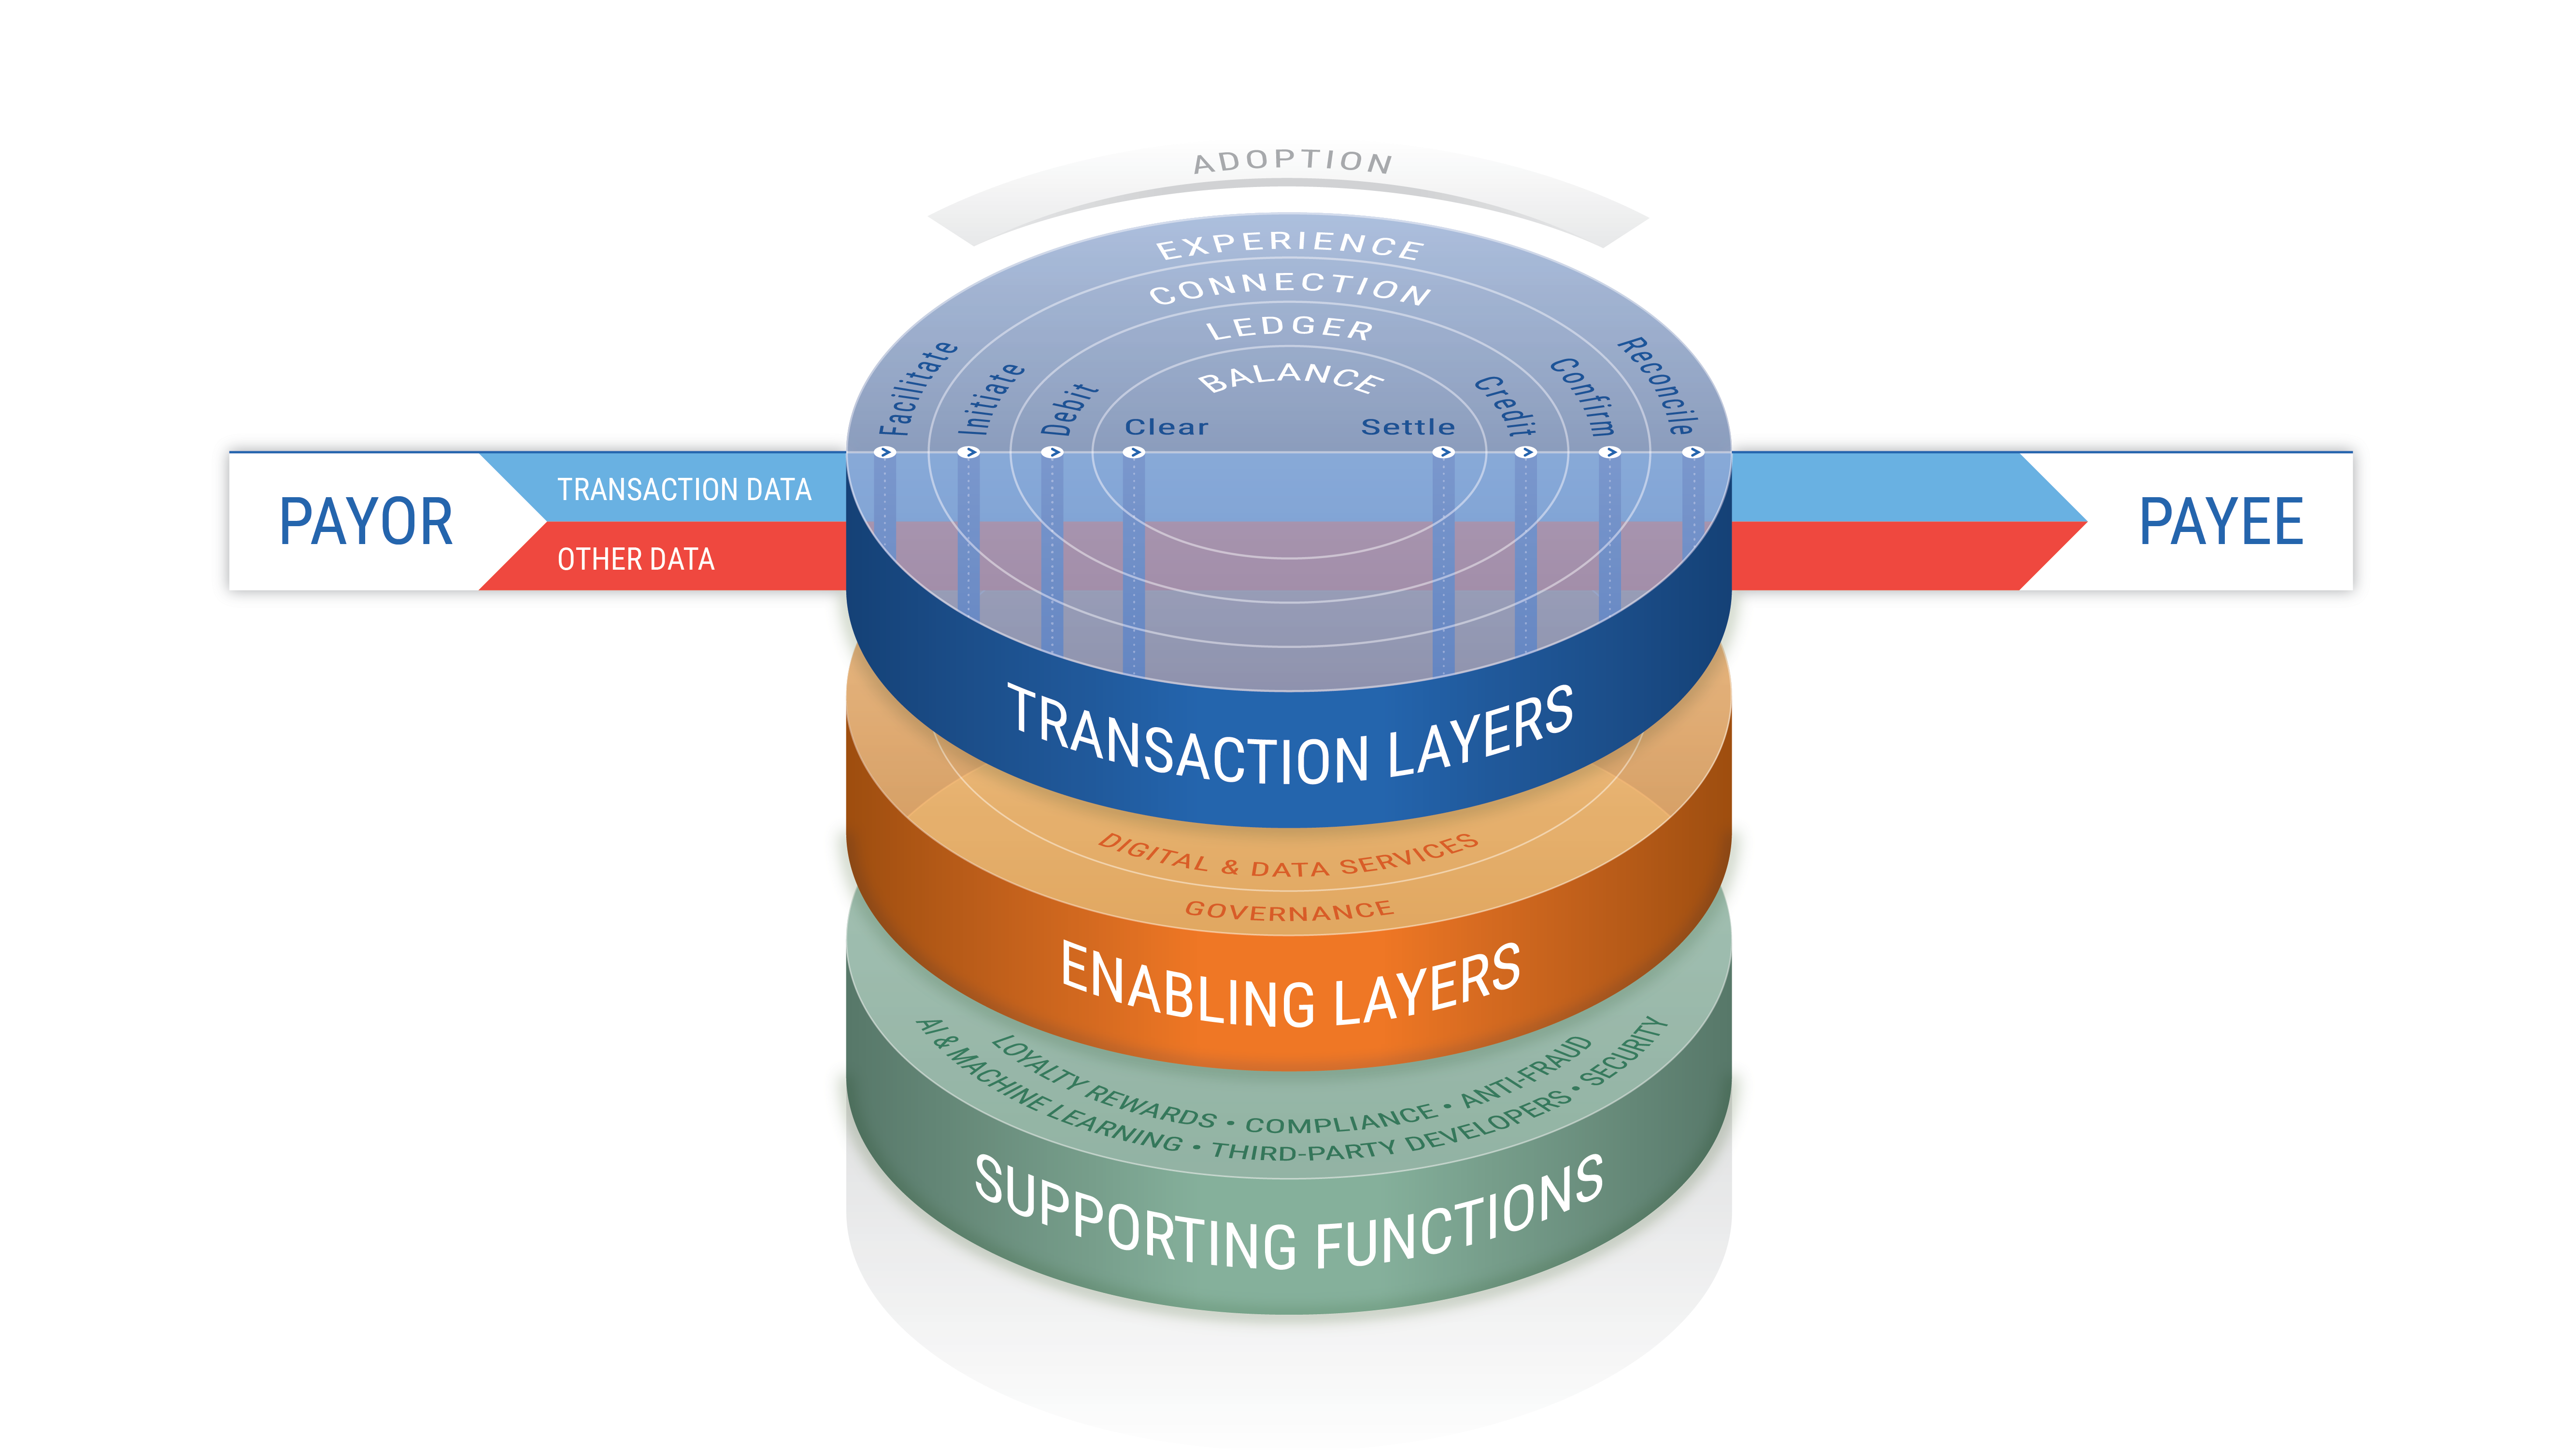 Diagram explaining the paytech layers; transaction layers, enabling layers, supporting functions.